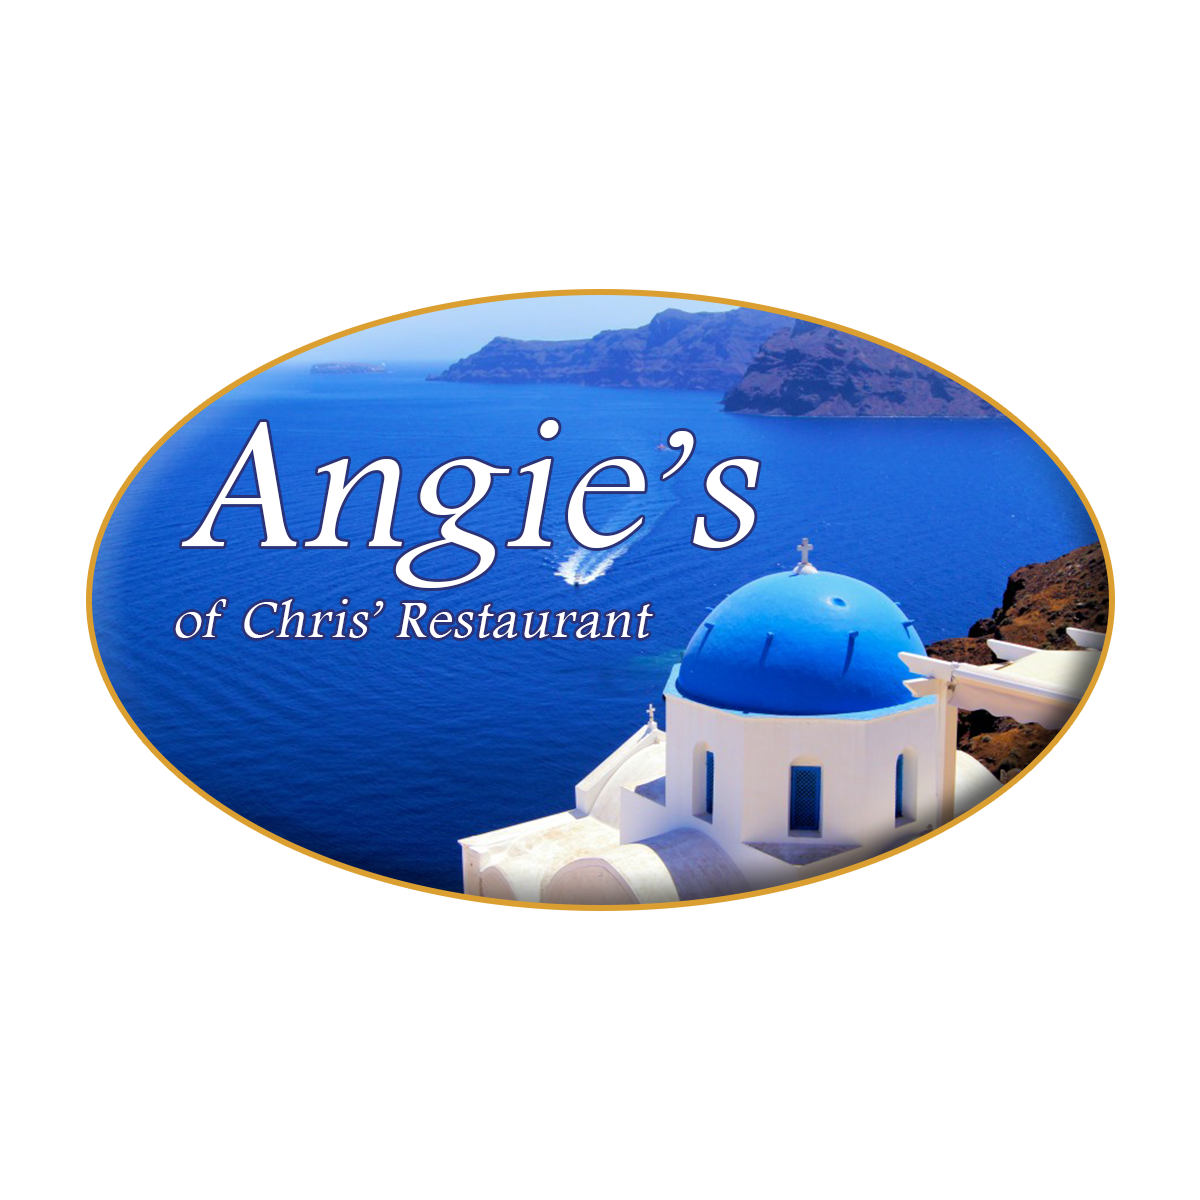 Angie's Catering of Chris's Restaurant